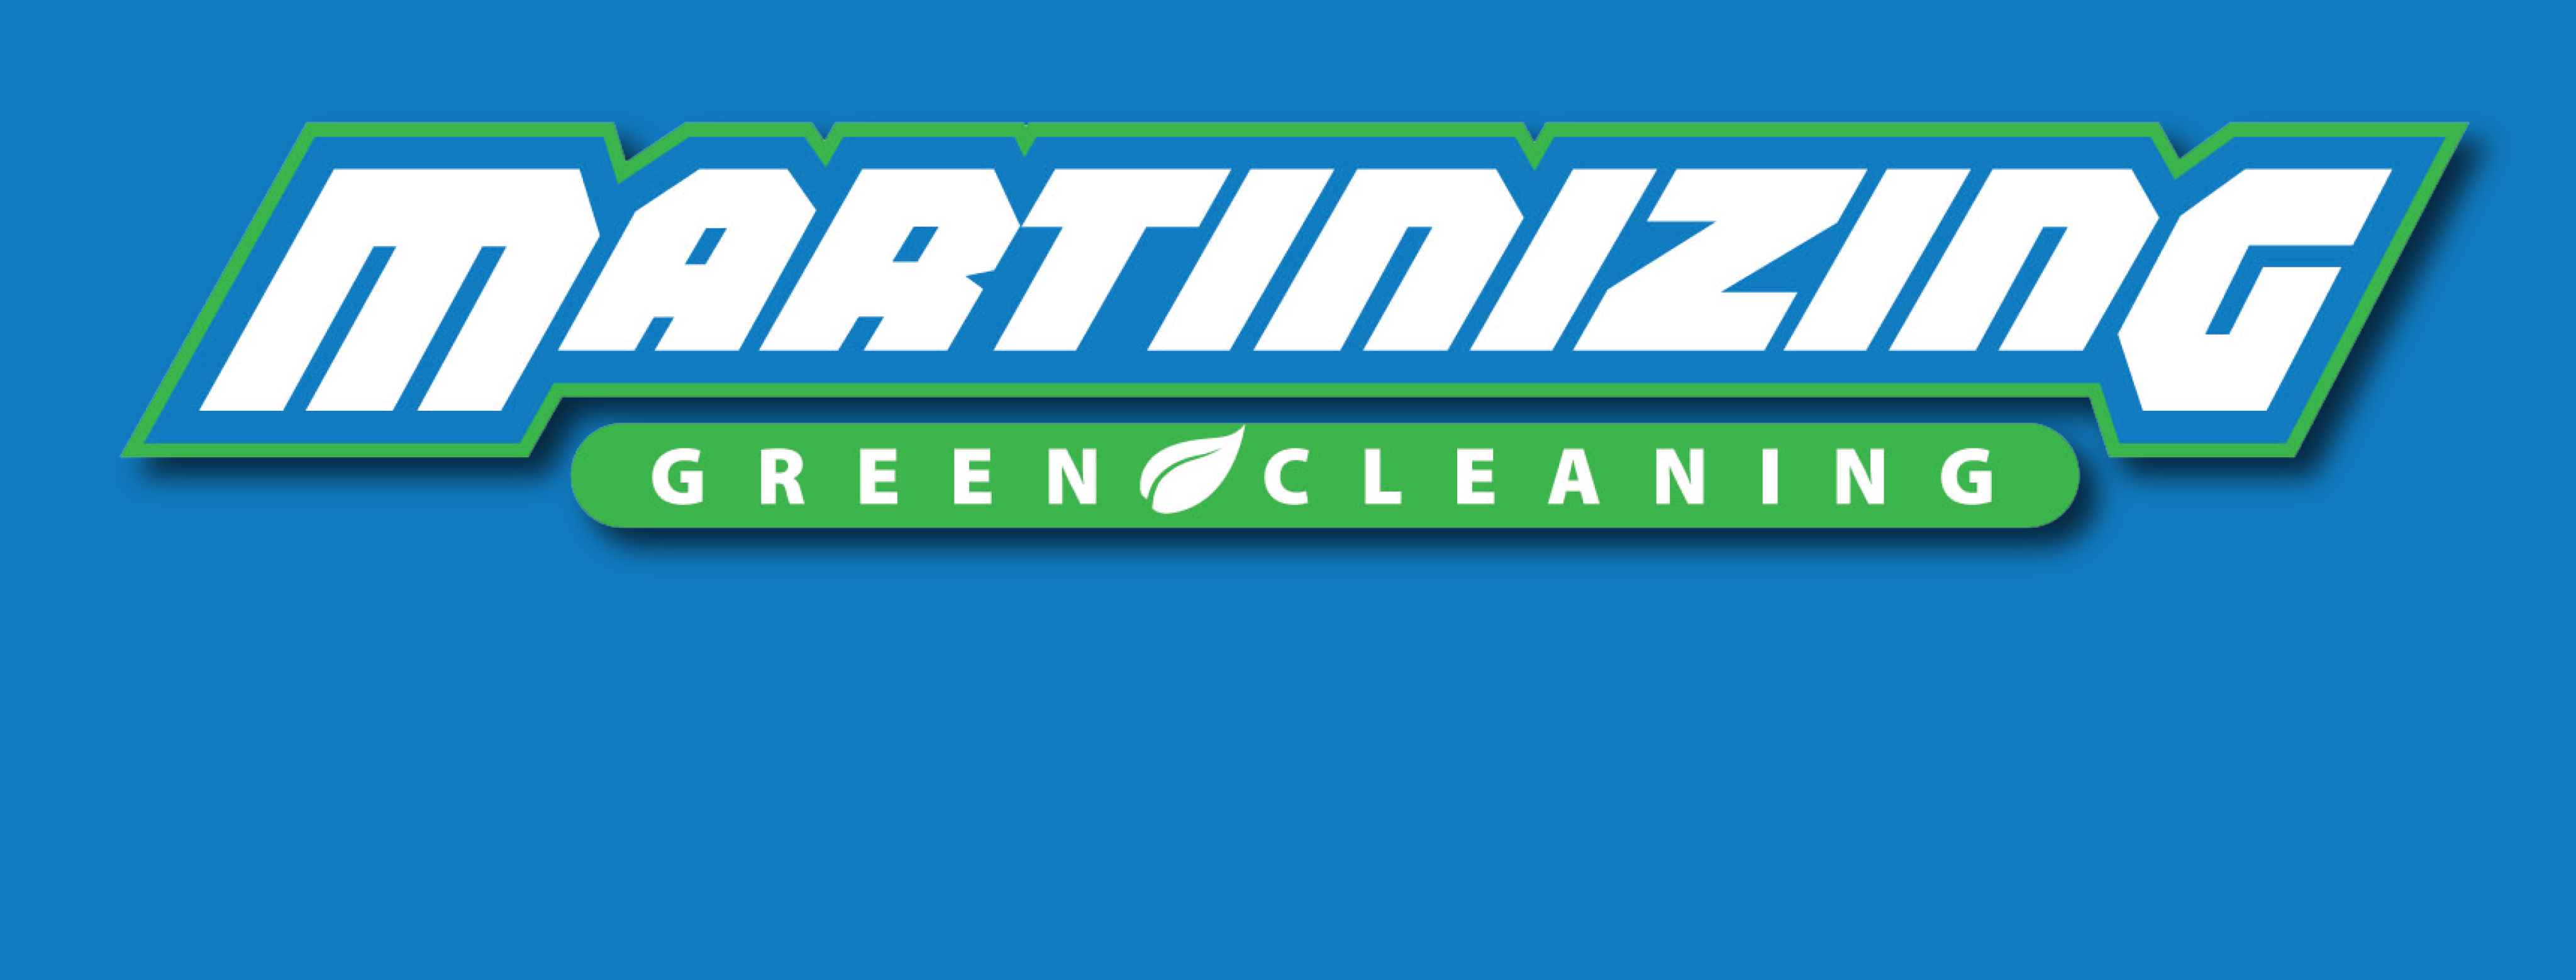 Martinizing reviews | Dry Cleaning at 13405 Watertown Plank Road - Elm Grove WI